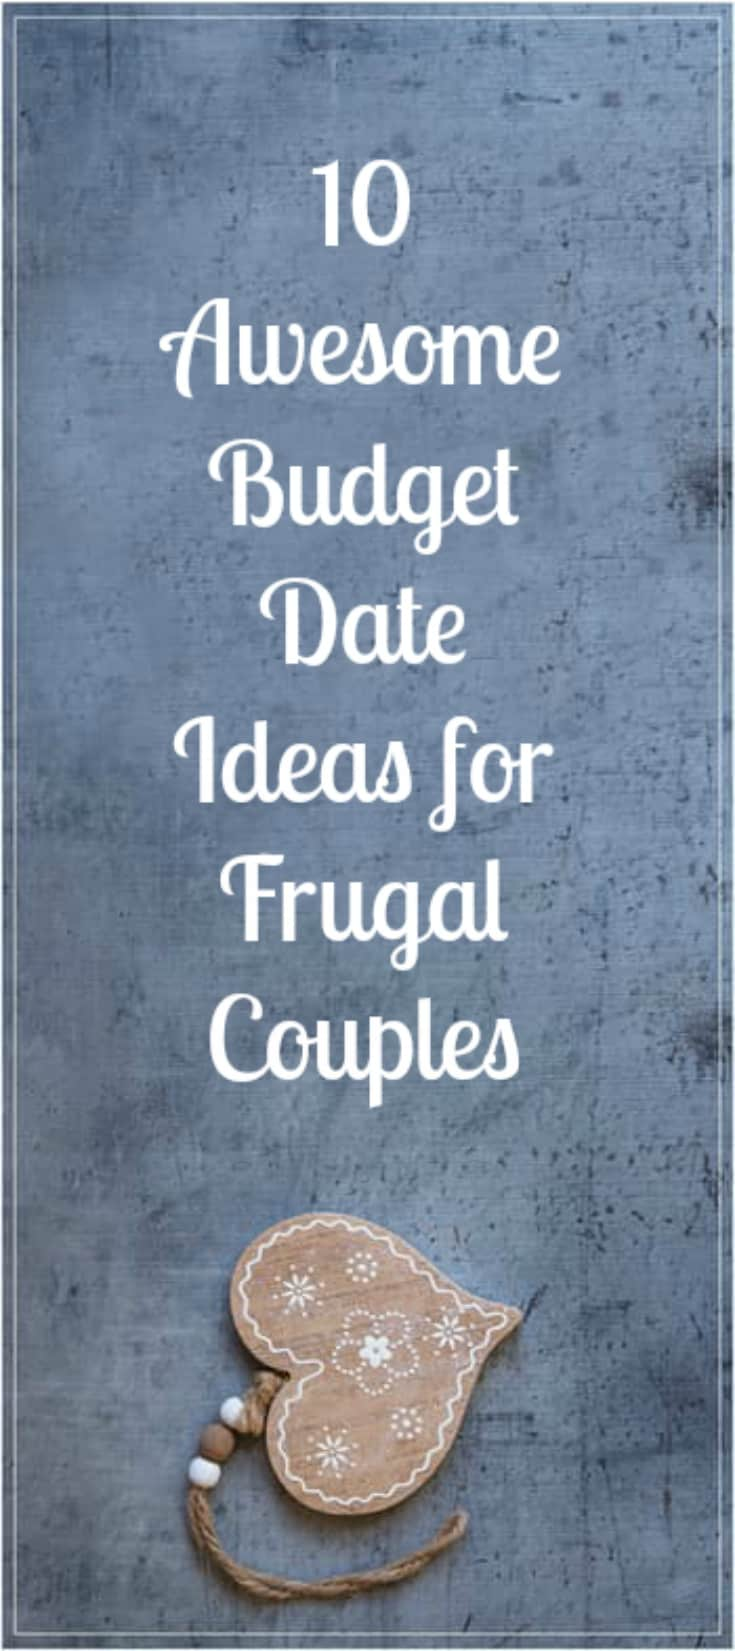 10 Awesome Budget Date Ideas for Frugal Couples - The Wallet Moth